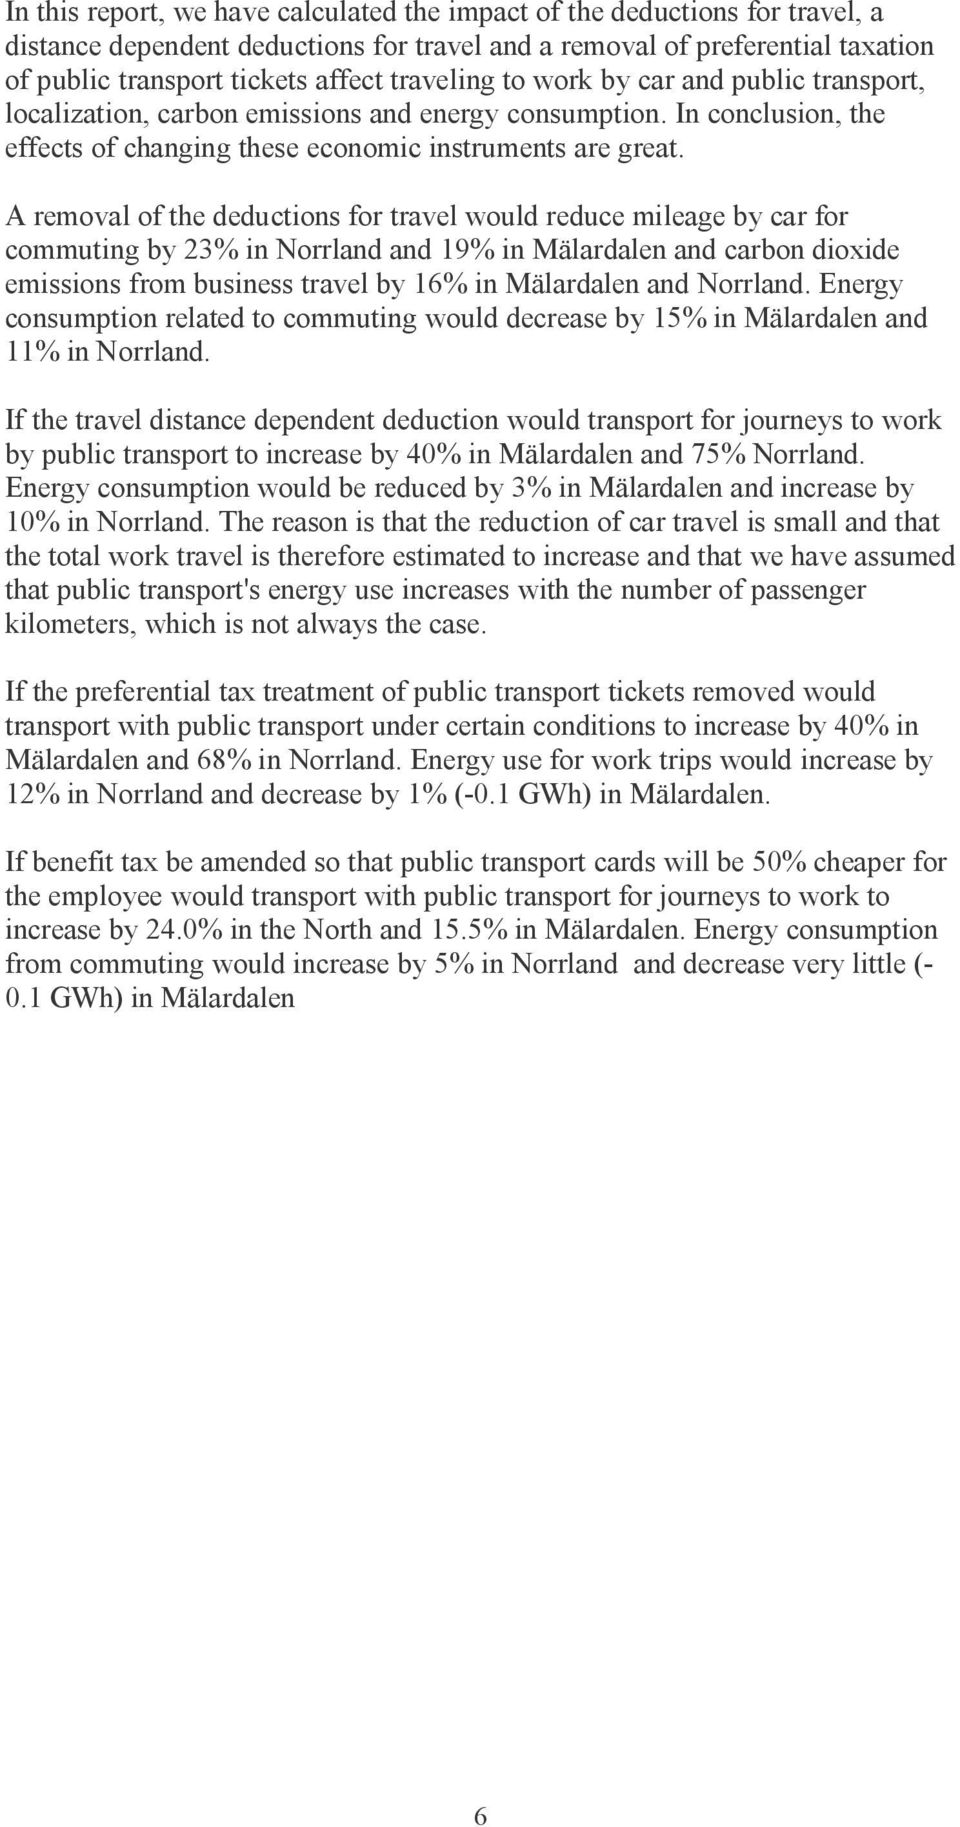 A removal of the deductions for travel would reduce mileage by car for commuting by 23% in Norrland and 19% in Mälardalen and carbon dioxide emissions from business travel by 16% in Mälardalen and